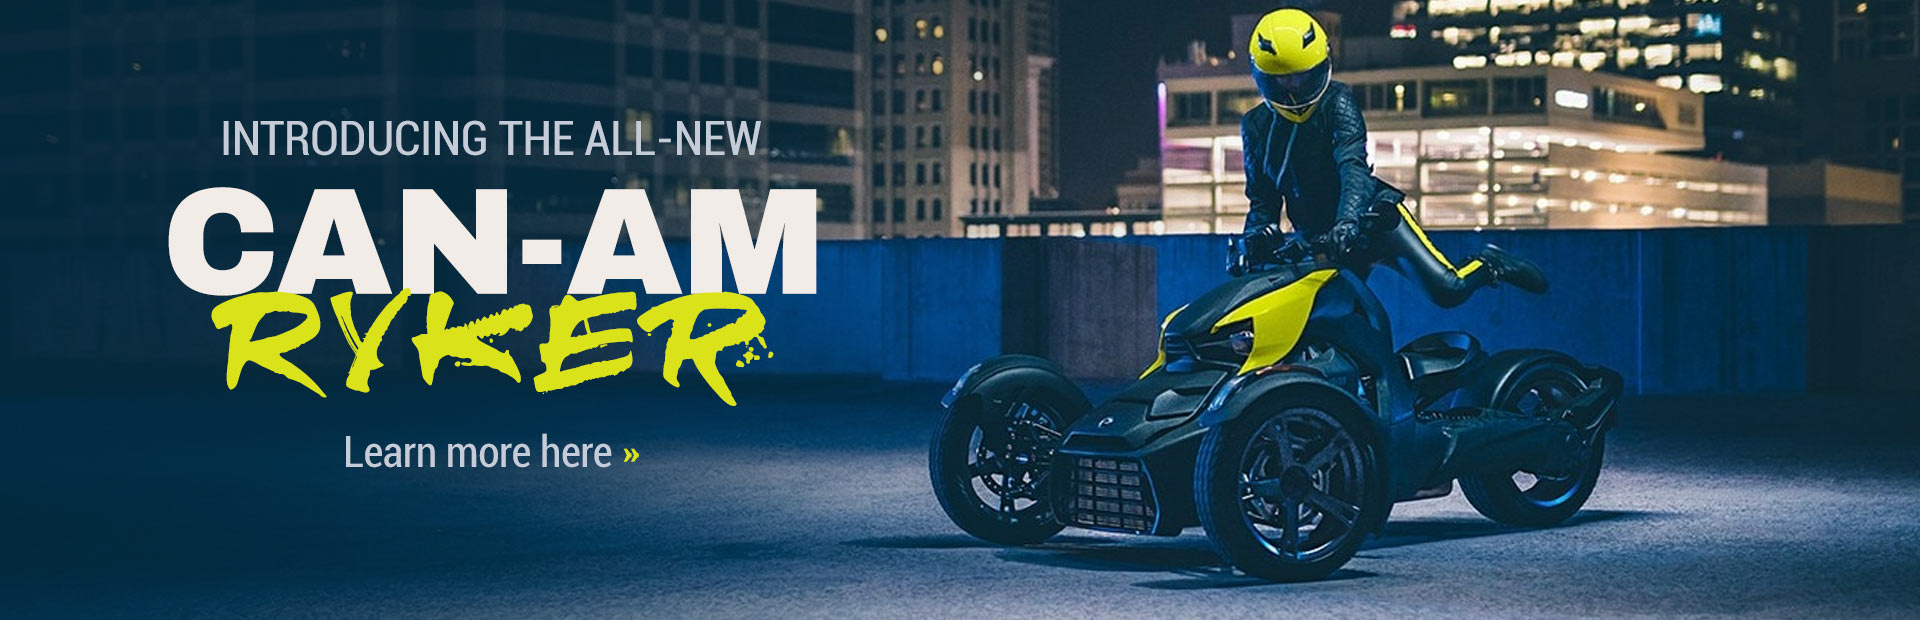 Introducing the All-New Can-Am Ryker